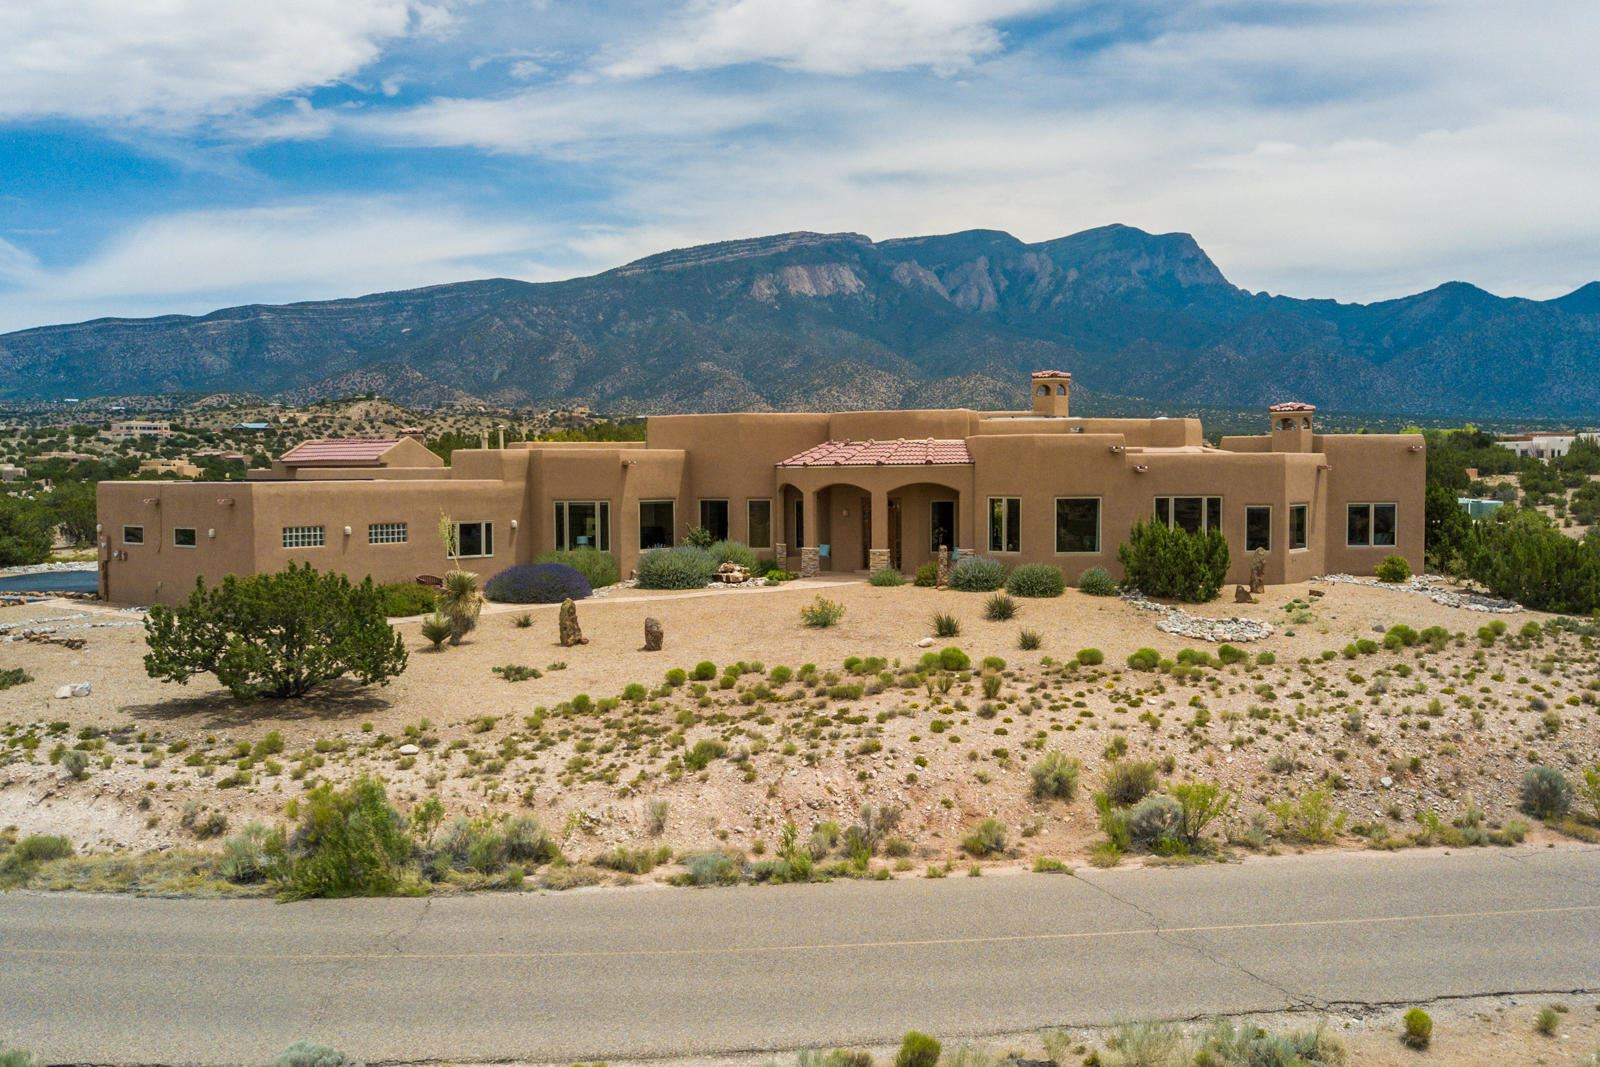 Photo of 72 ANASAZI TRAILS Road, Placitas, NM 87043 (MLS # 970815)